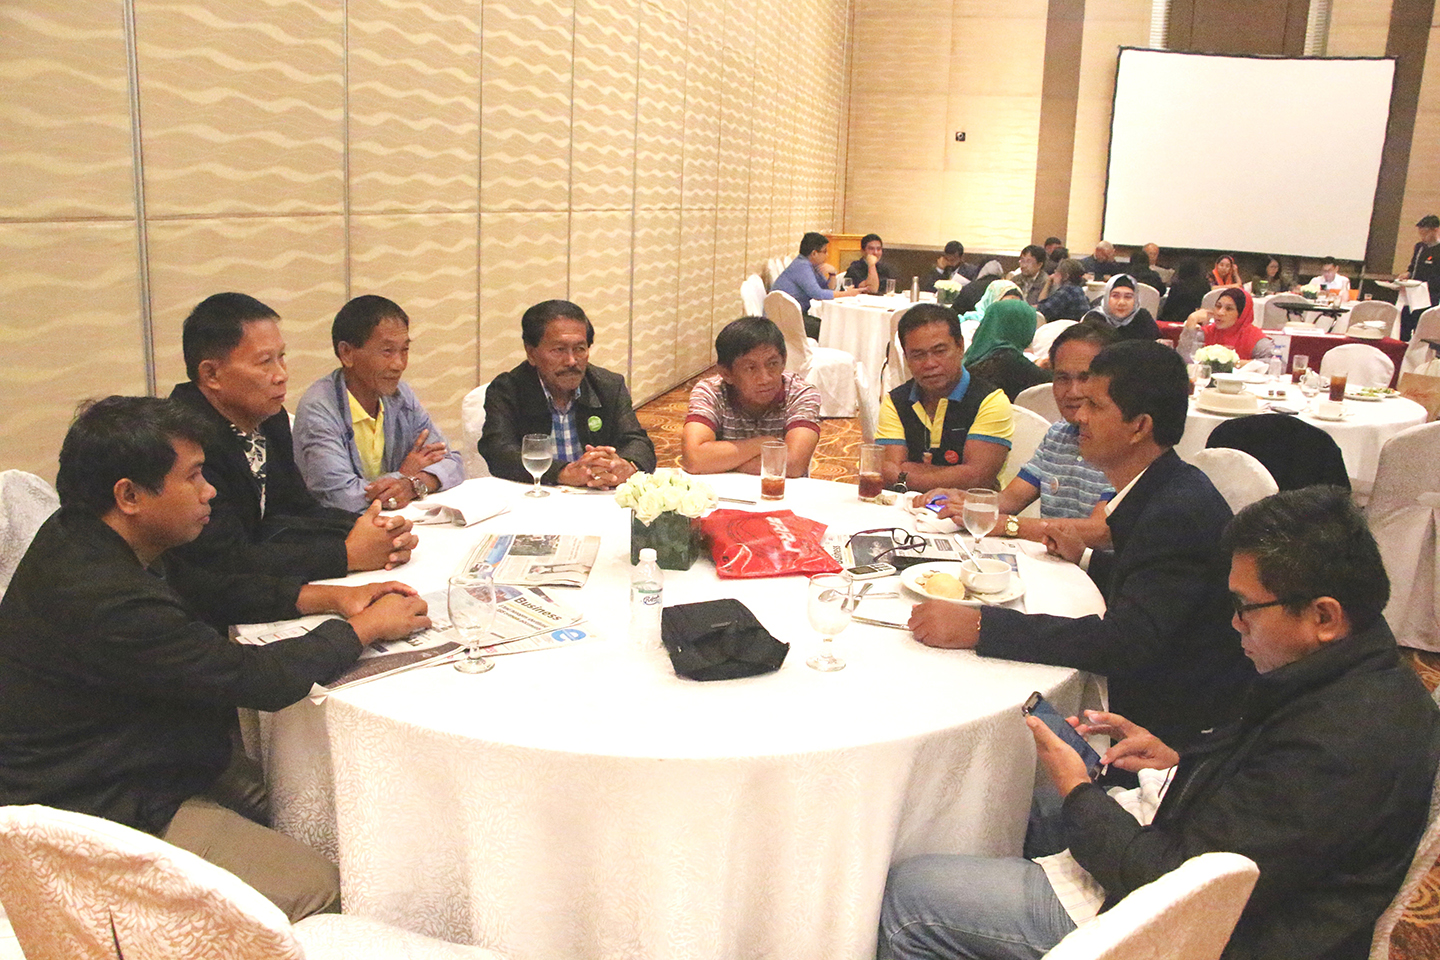 CSOs laud granting of fiscal autonomy in BBL